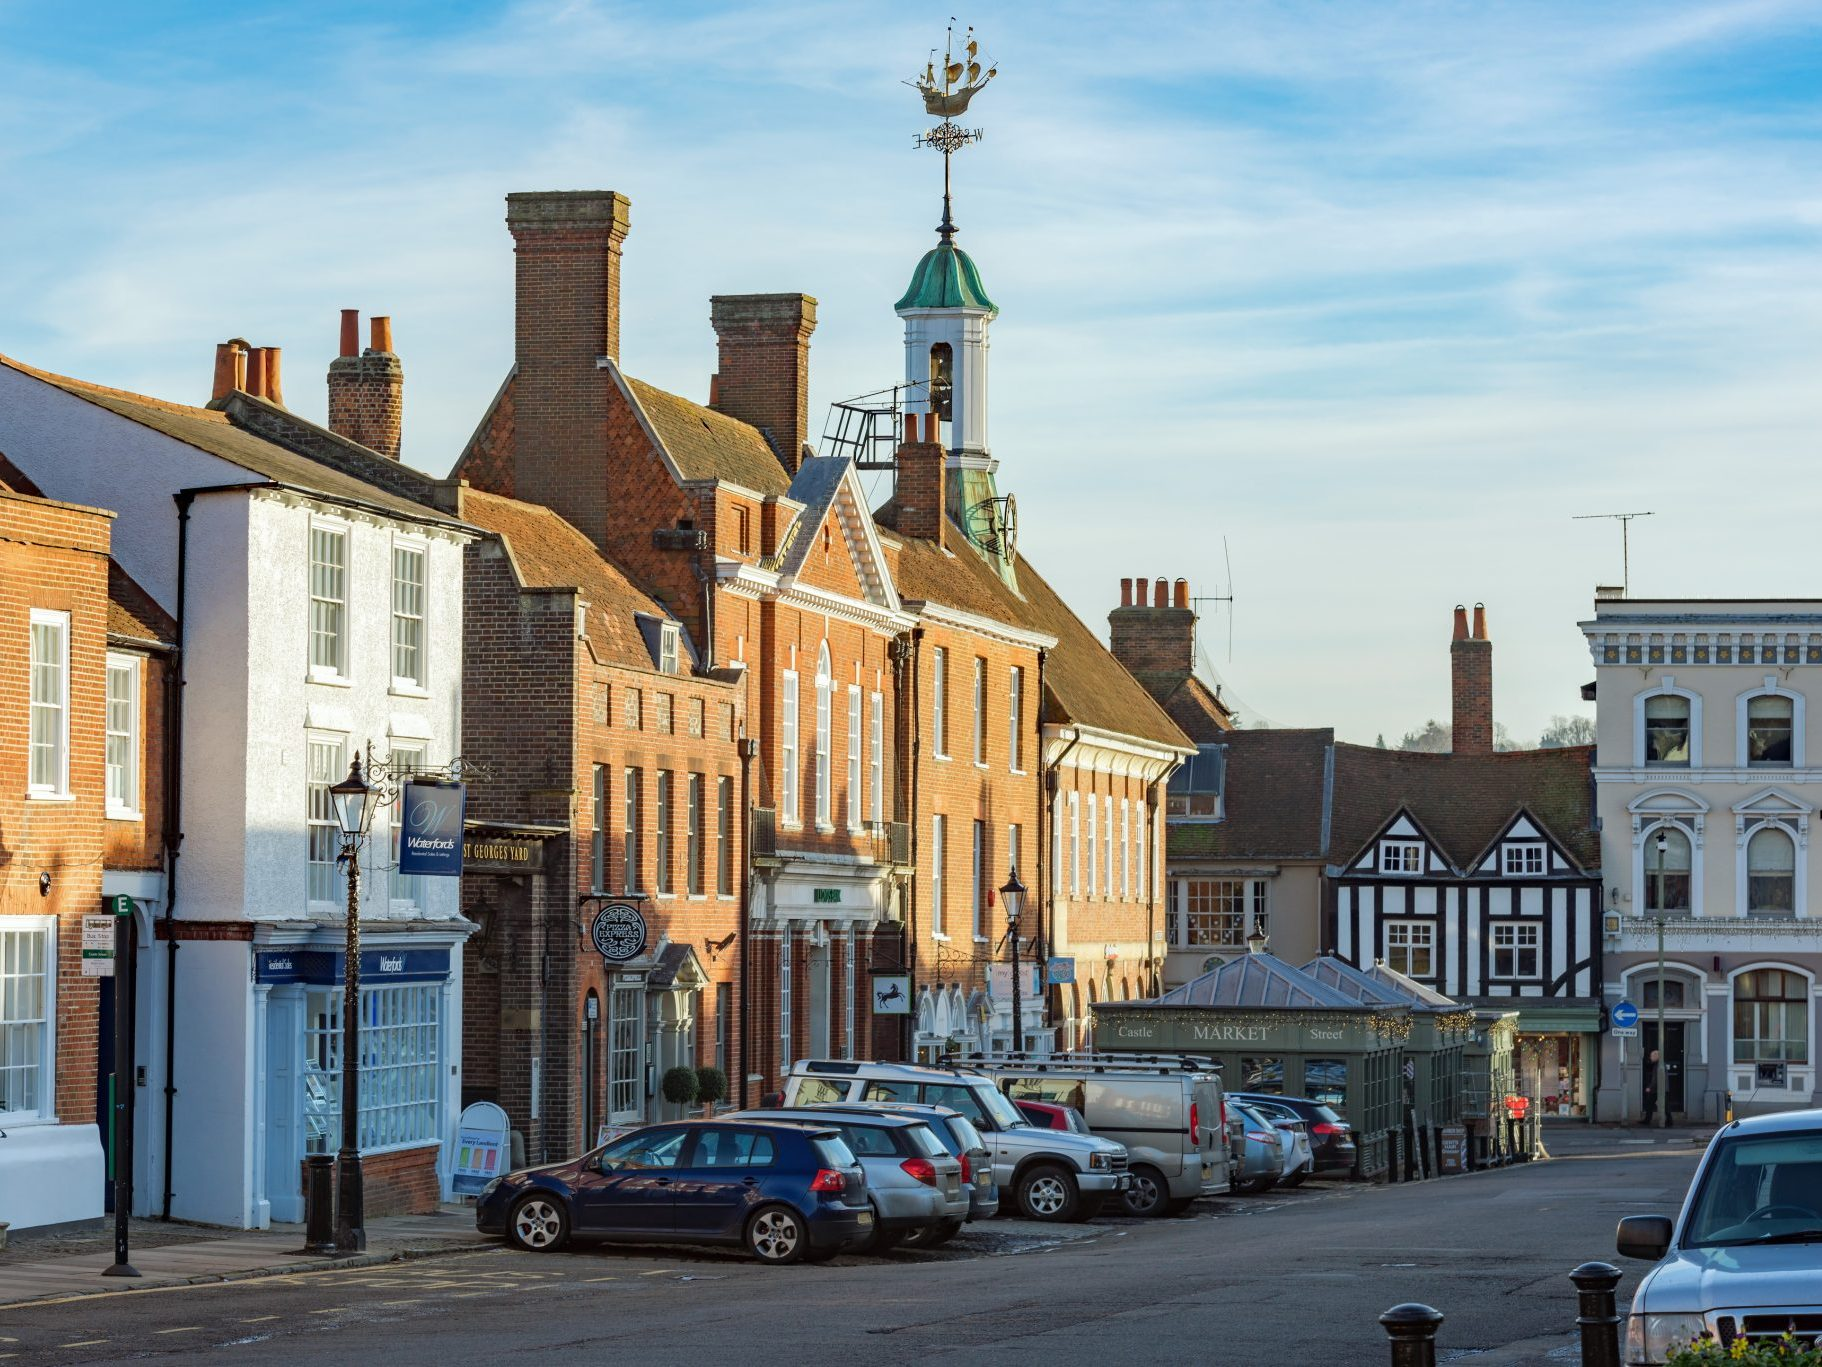 Farnham, UK. December 14th 2016. Castle Street in the centre of Farnham is an old street with a mixture of commercial and residential buildings. Cars are parked up in marked bays on the street. Shops comprise estate agencies, restaurants and specialist retail outlets.